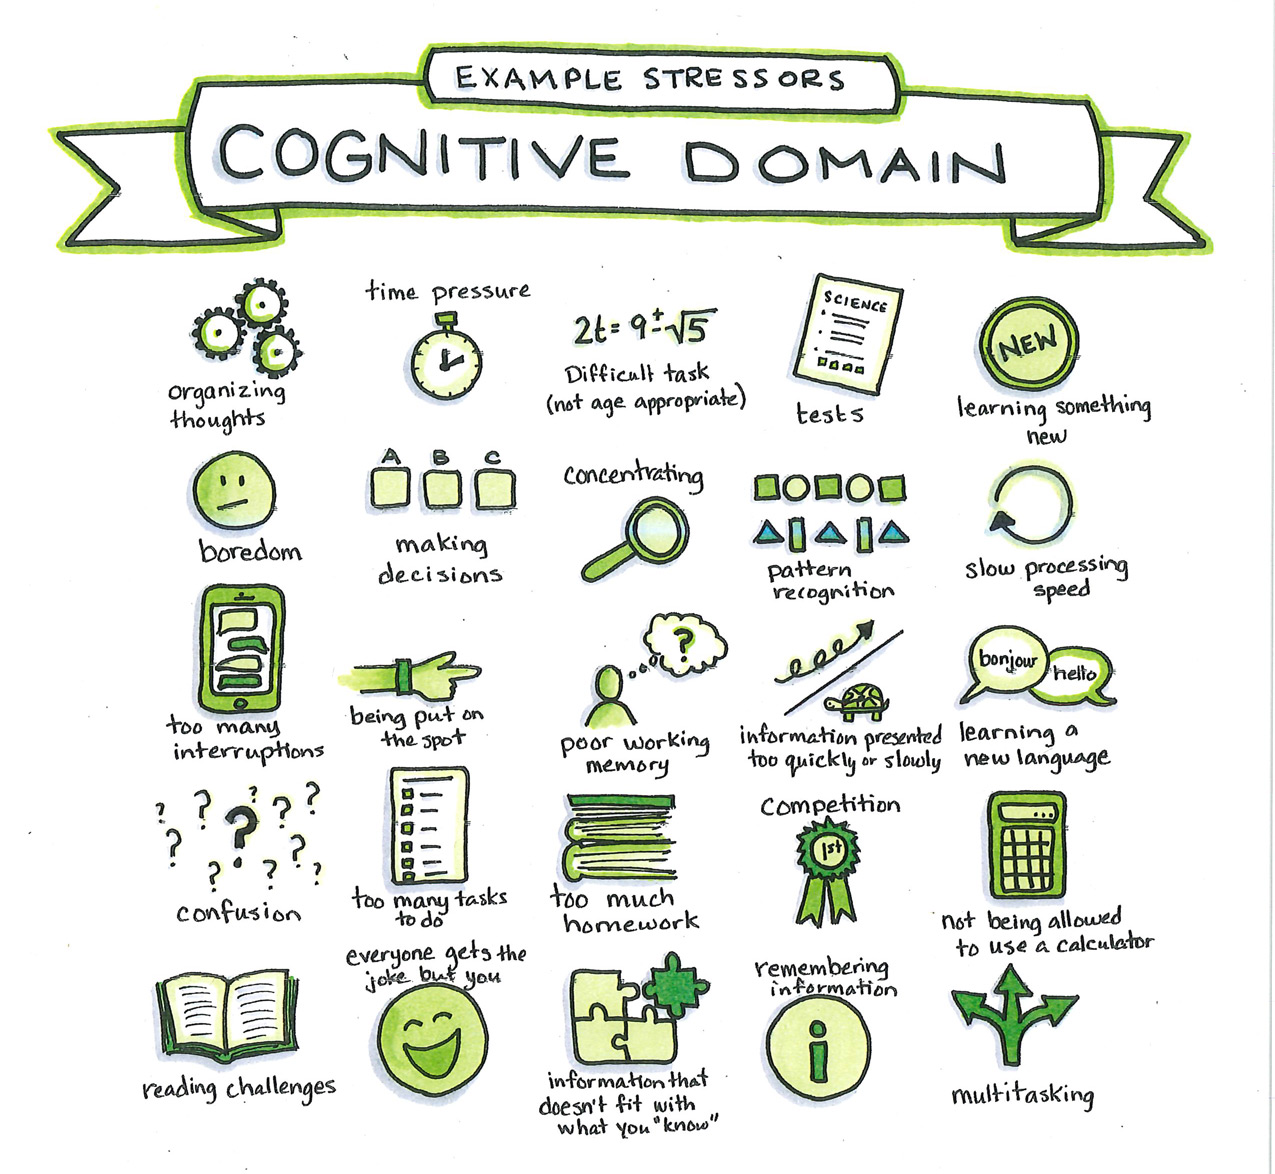 Example Stressors - Cognitive Domain